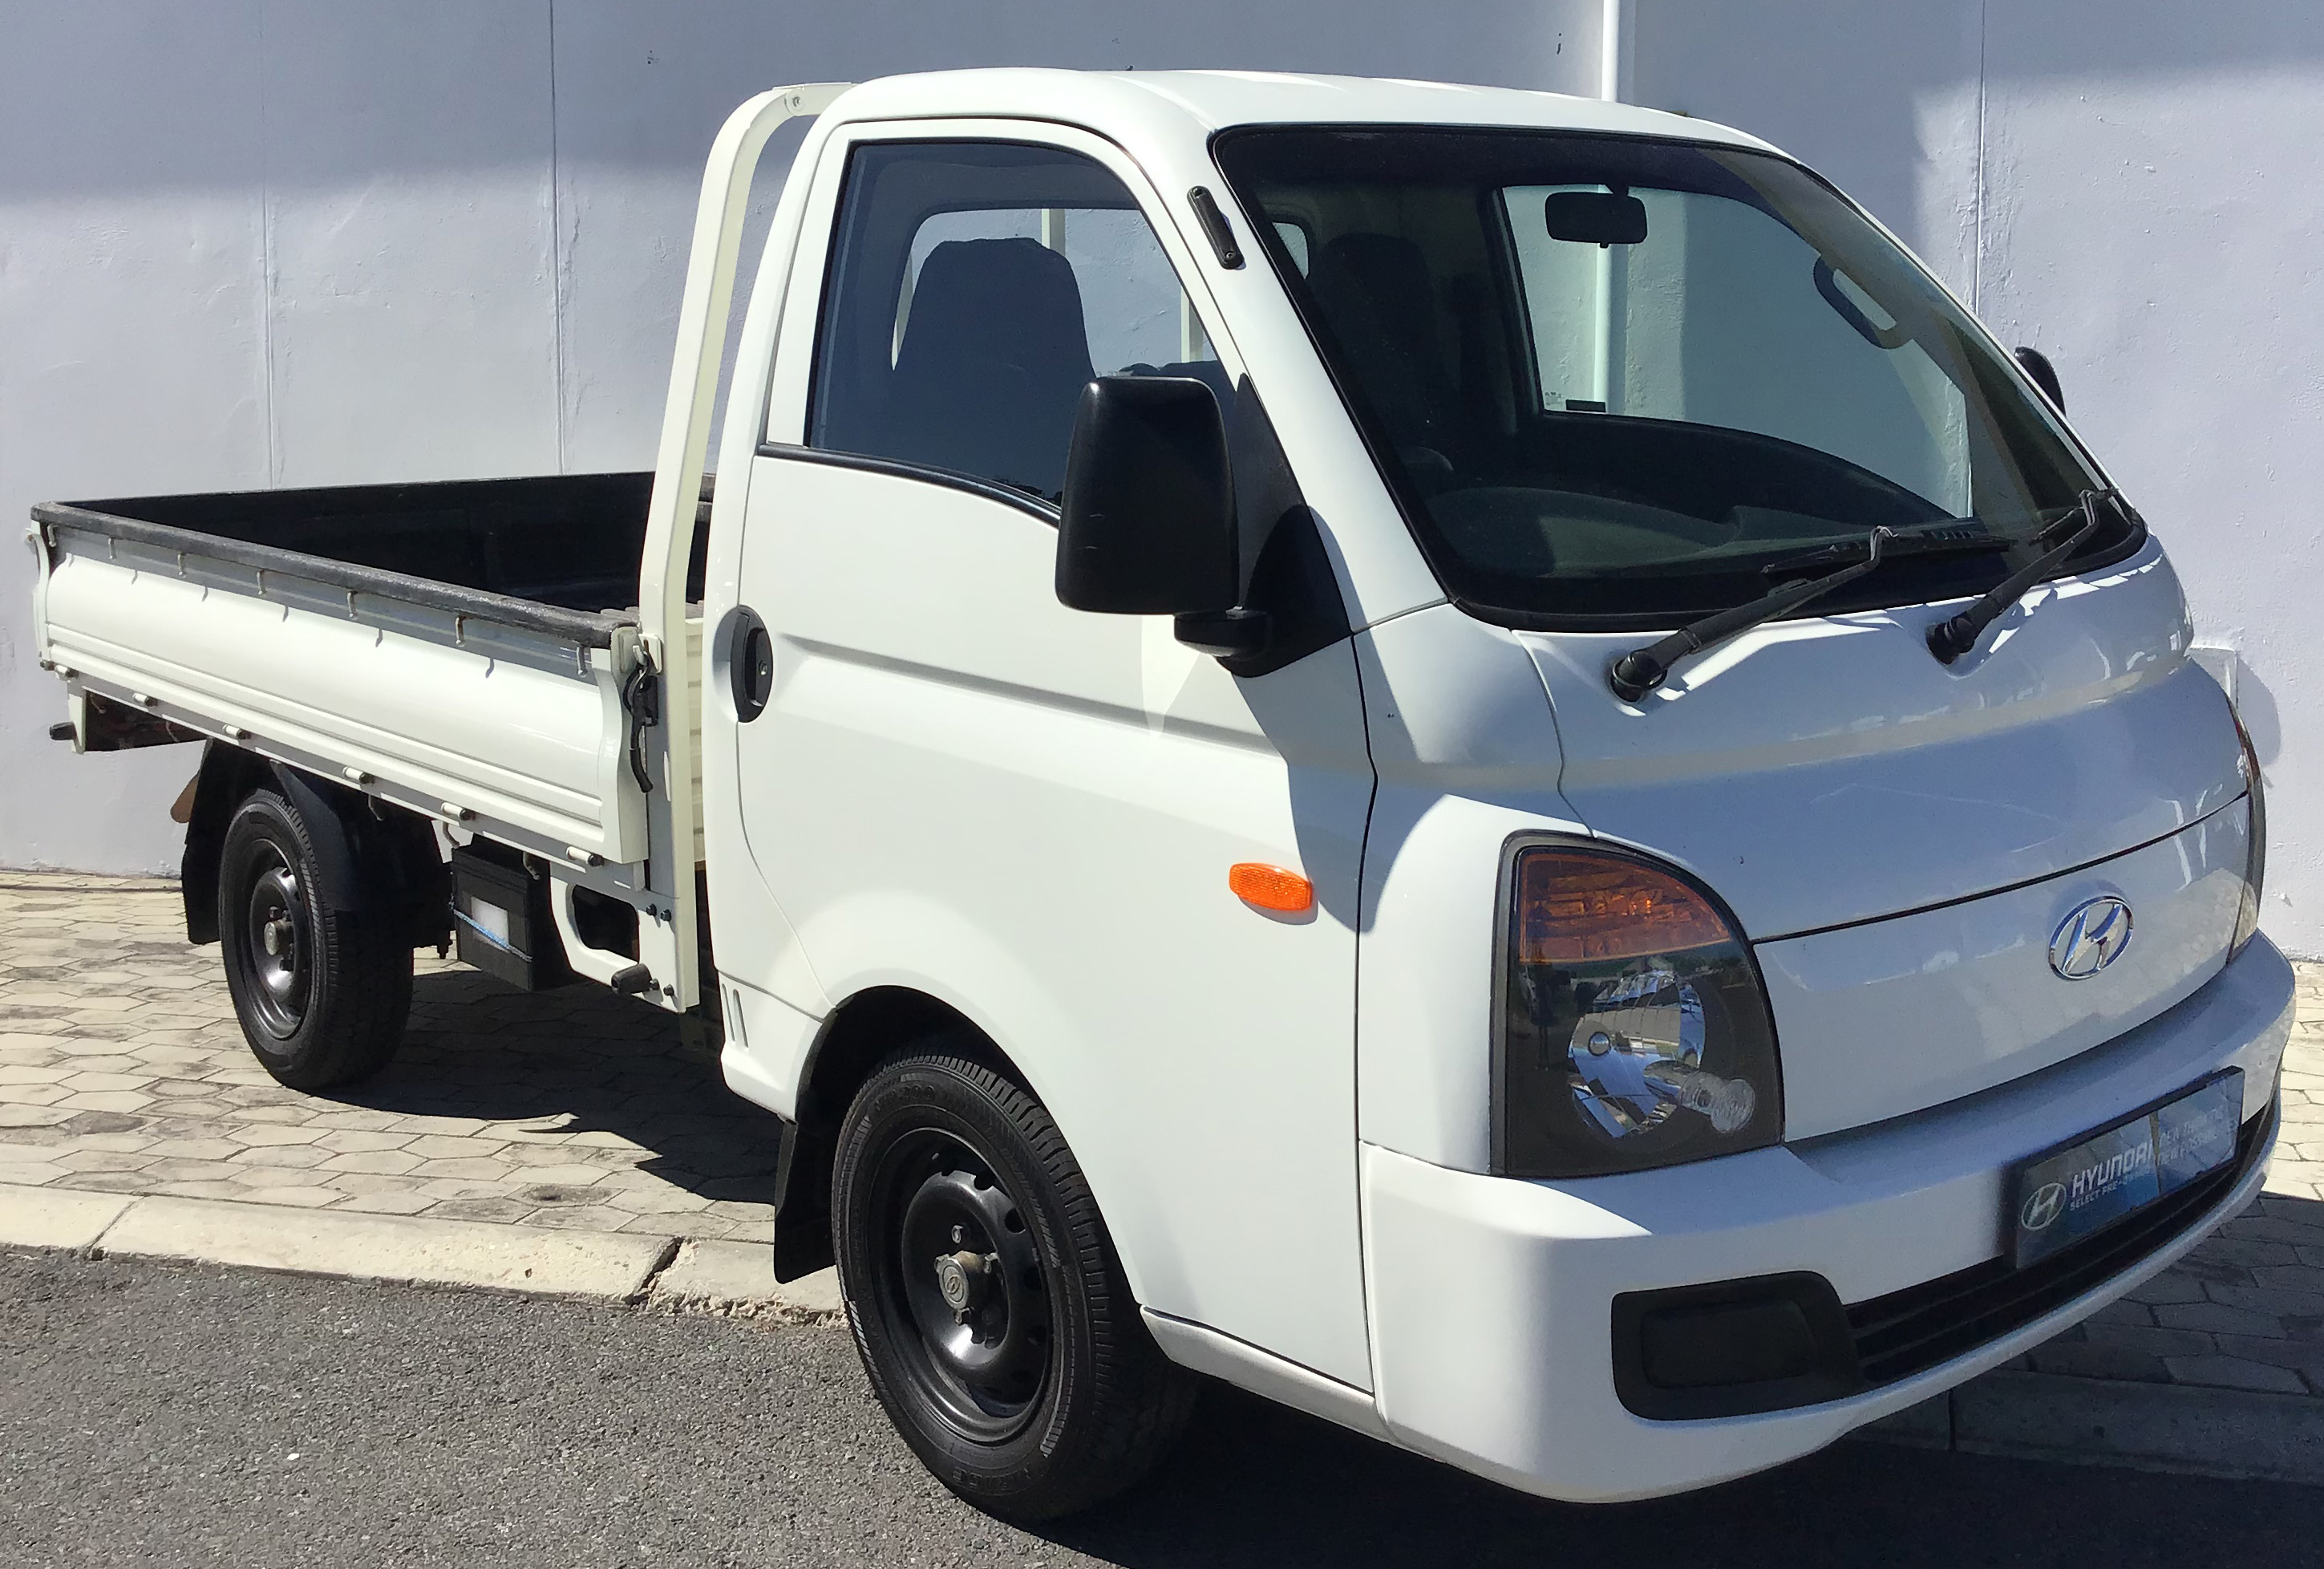 ee807688e5 Quality Approved Used Vehicles In South Africa - Affordable Pre-Owned